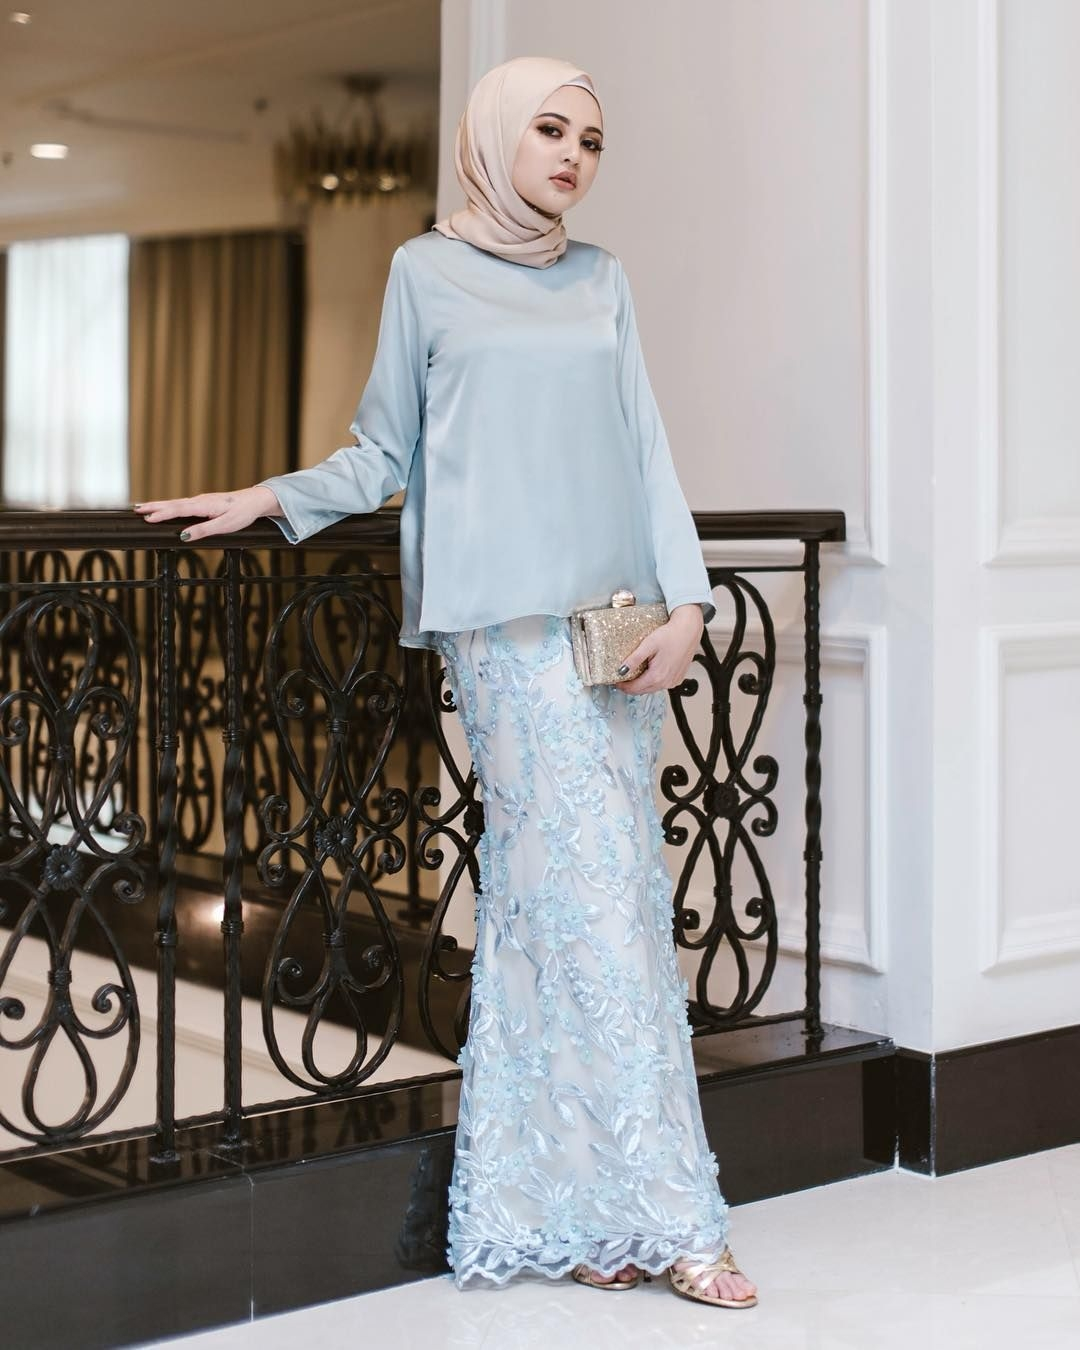 pin wiwi on model kebaya hijab fashion kebaya hijab